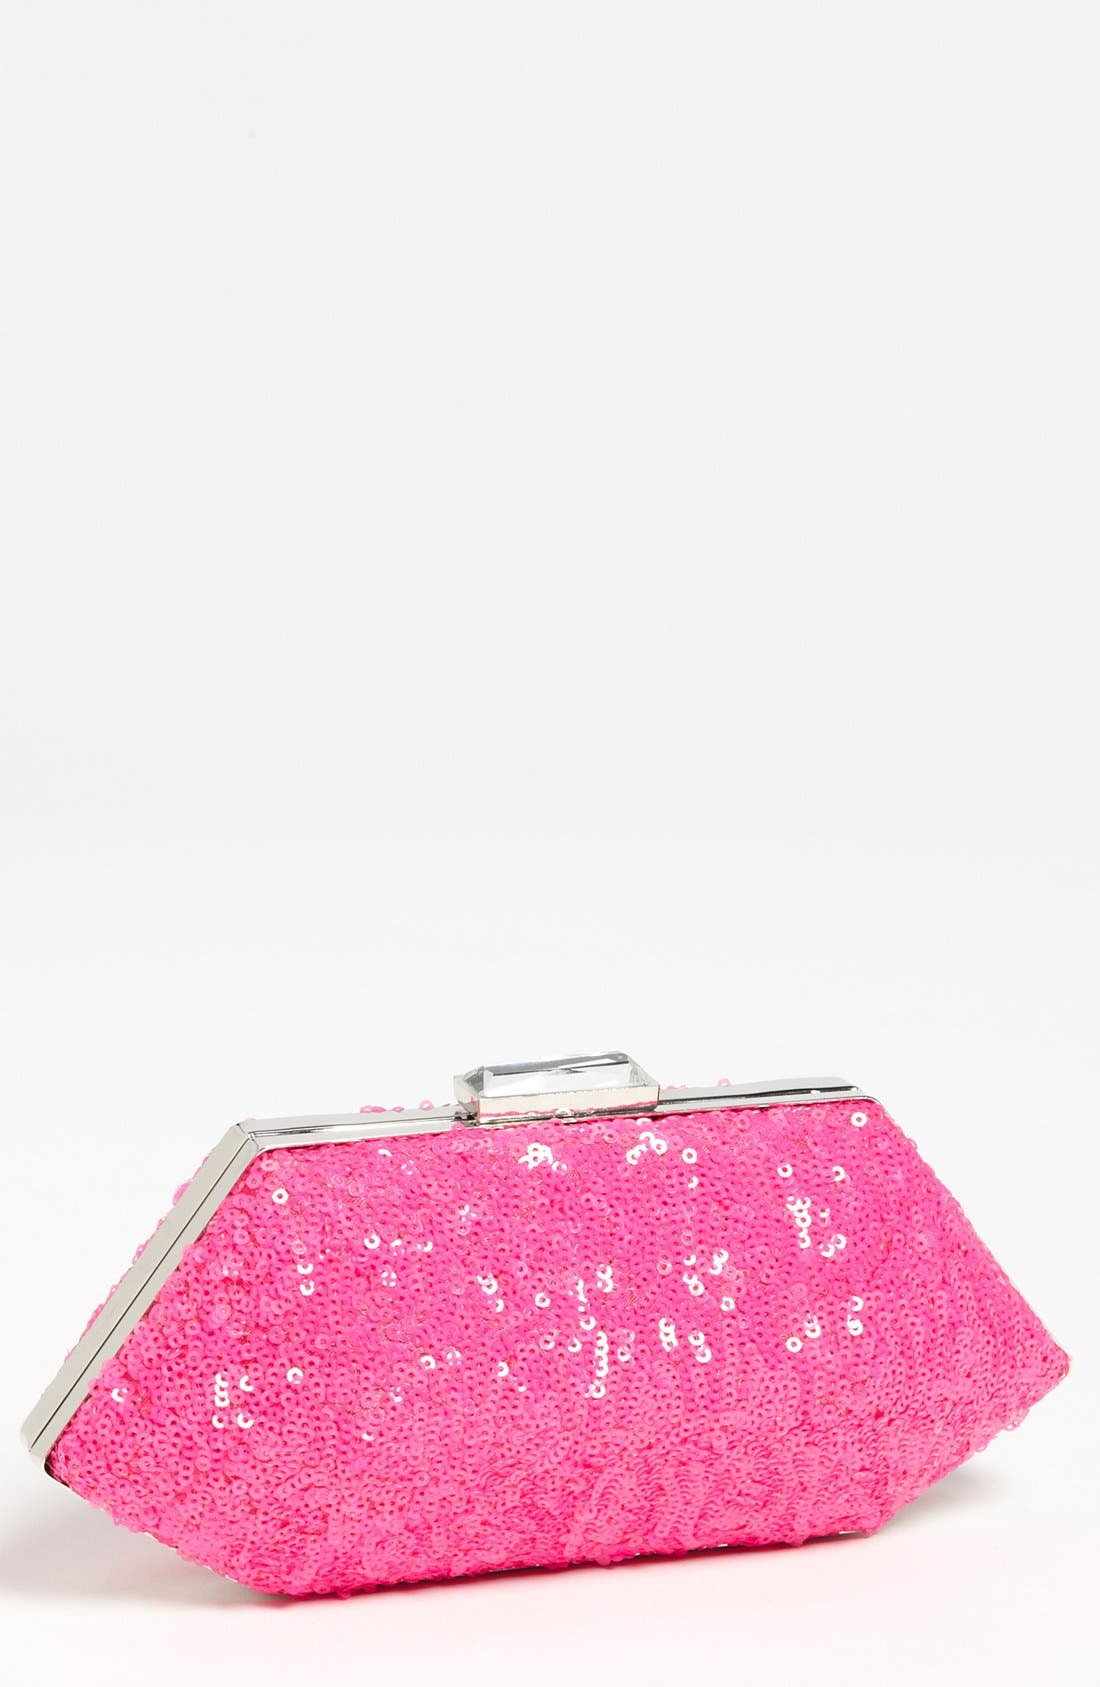 Alternate Image 1 Selected - Expressions NYC Sequin Clutch